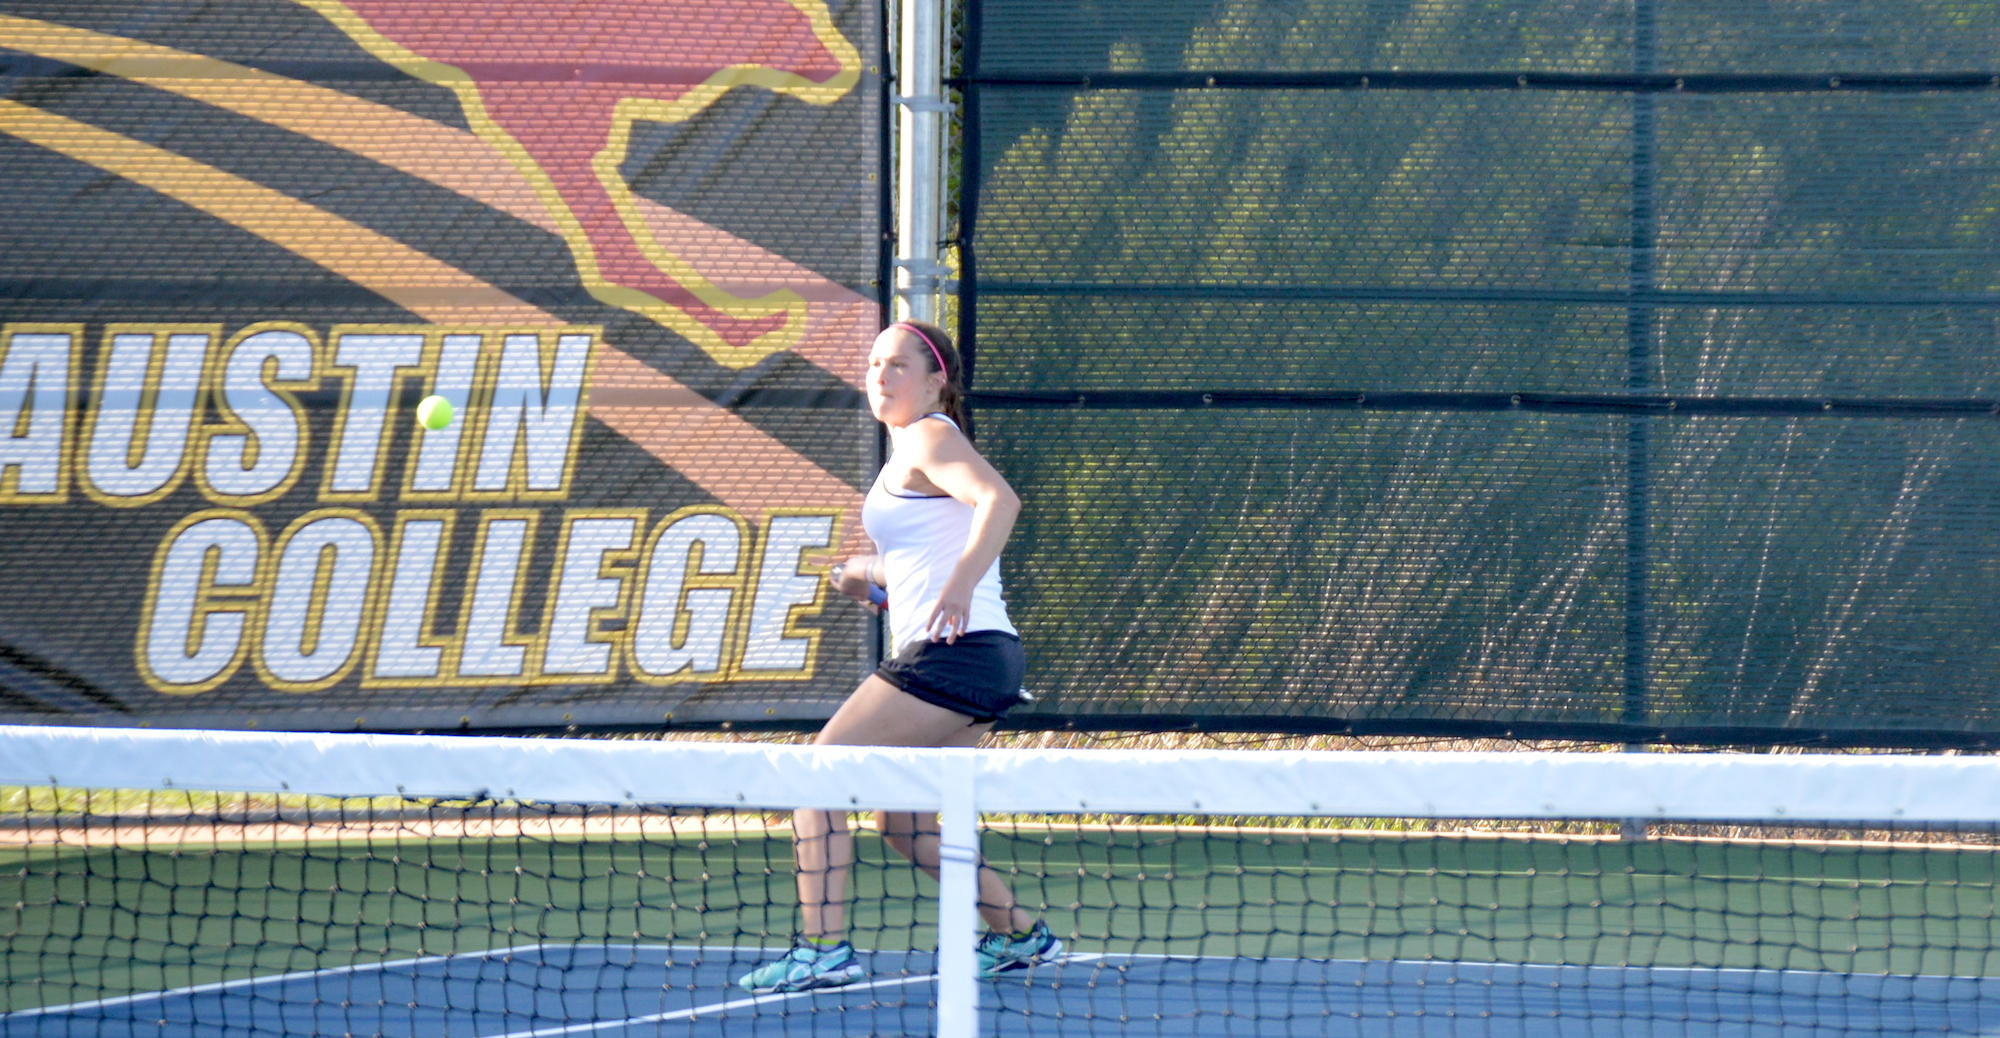 UW-Eau Claire Defeats Women's Tennis 8-1